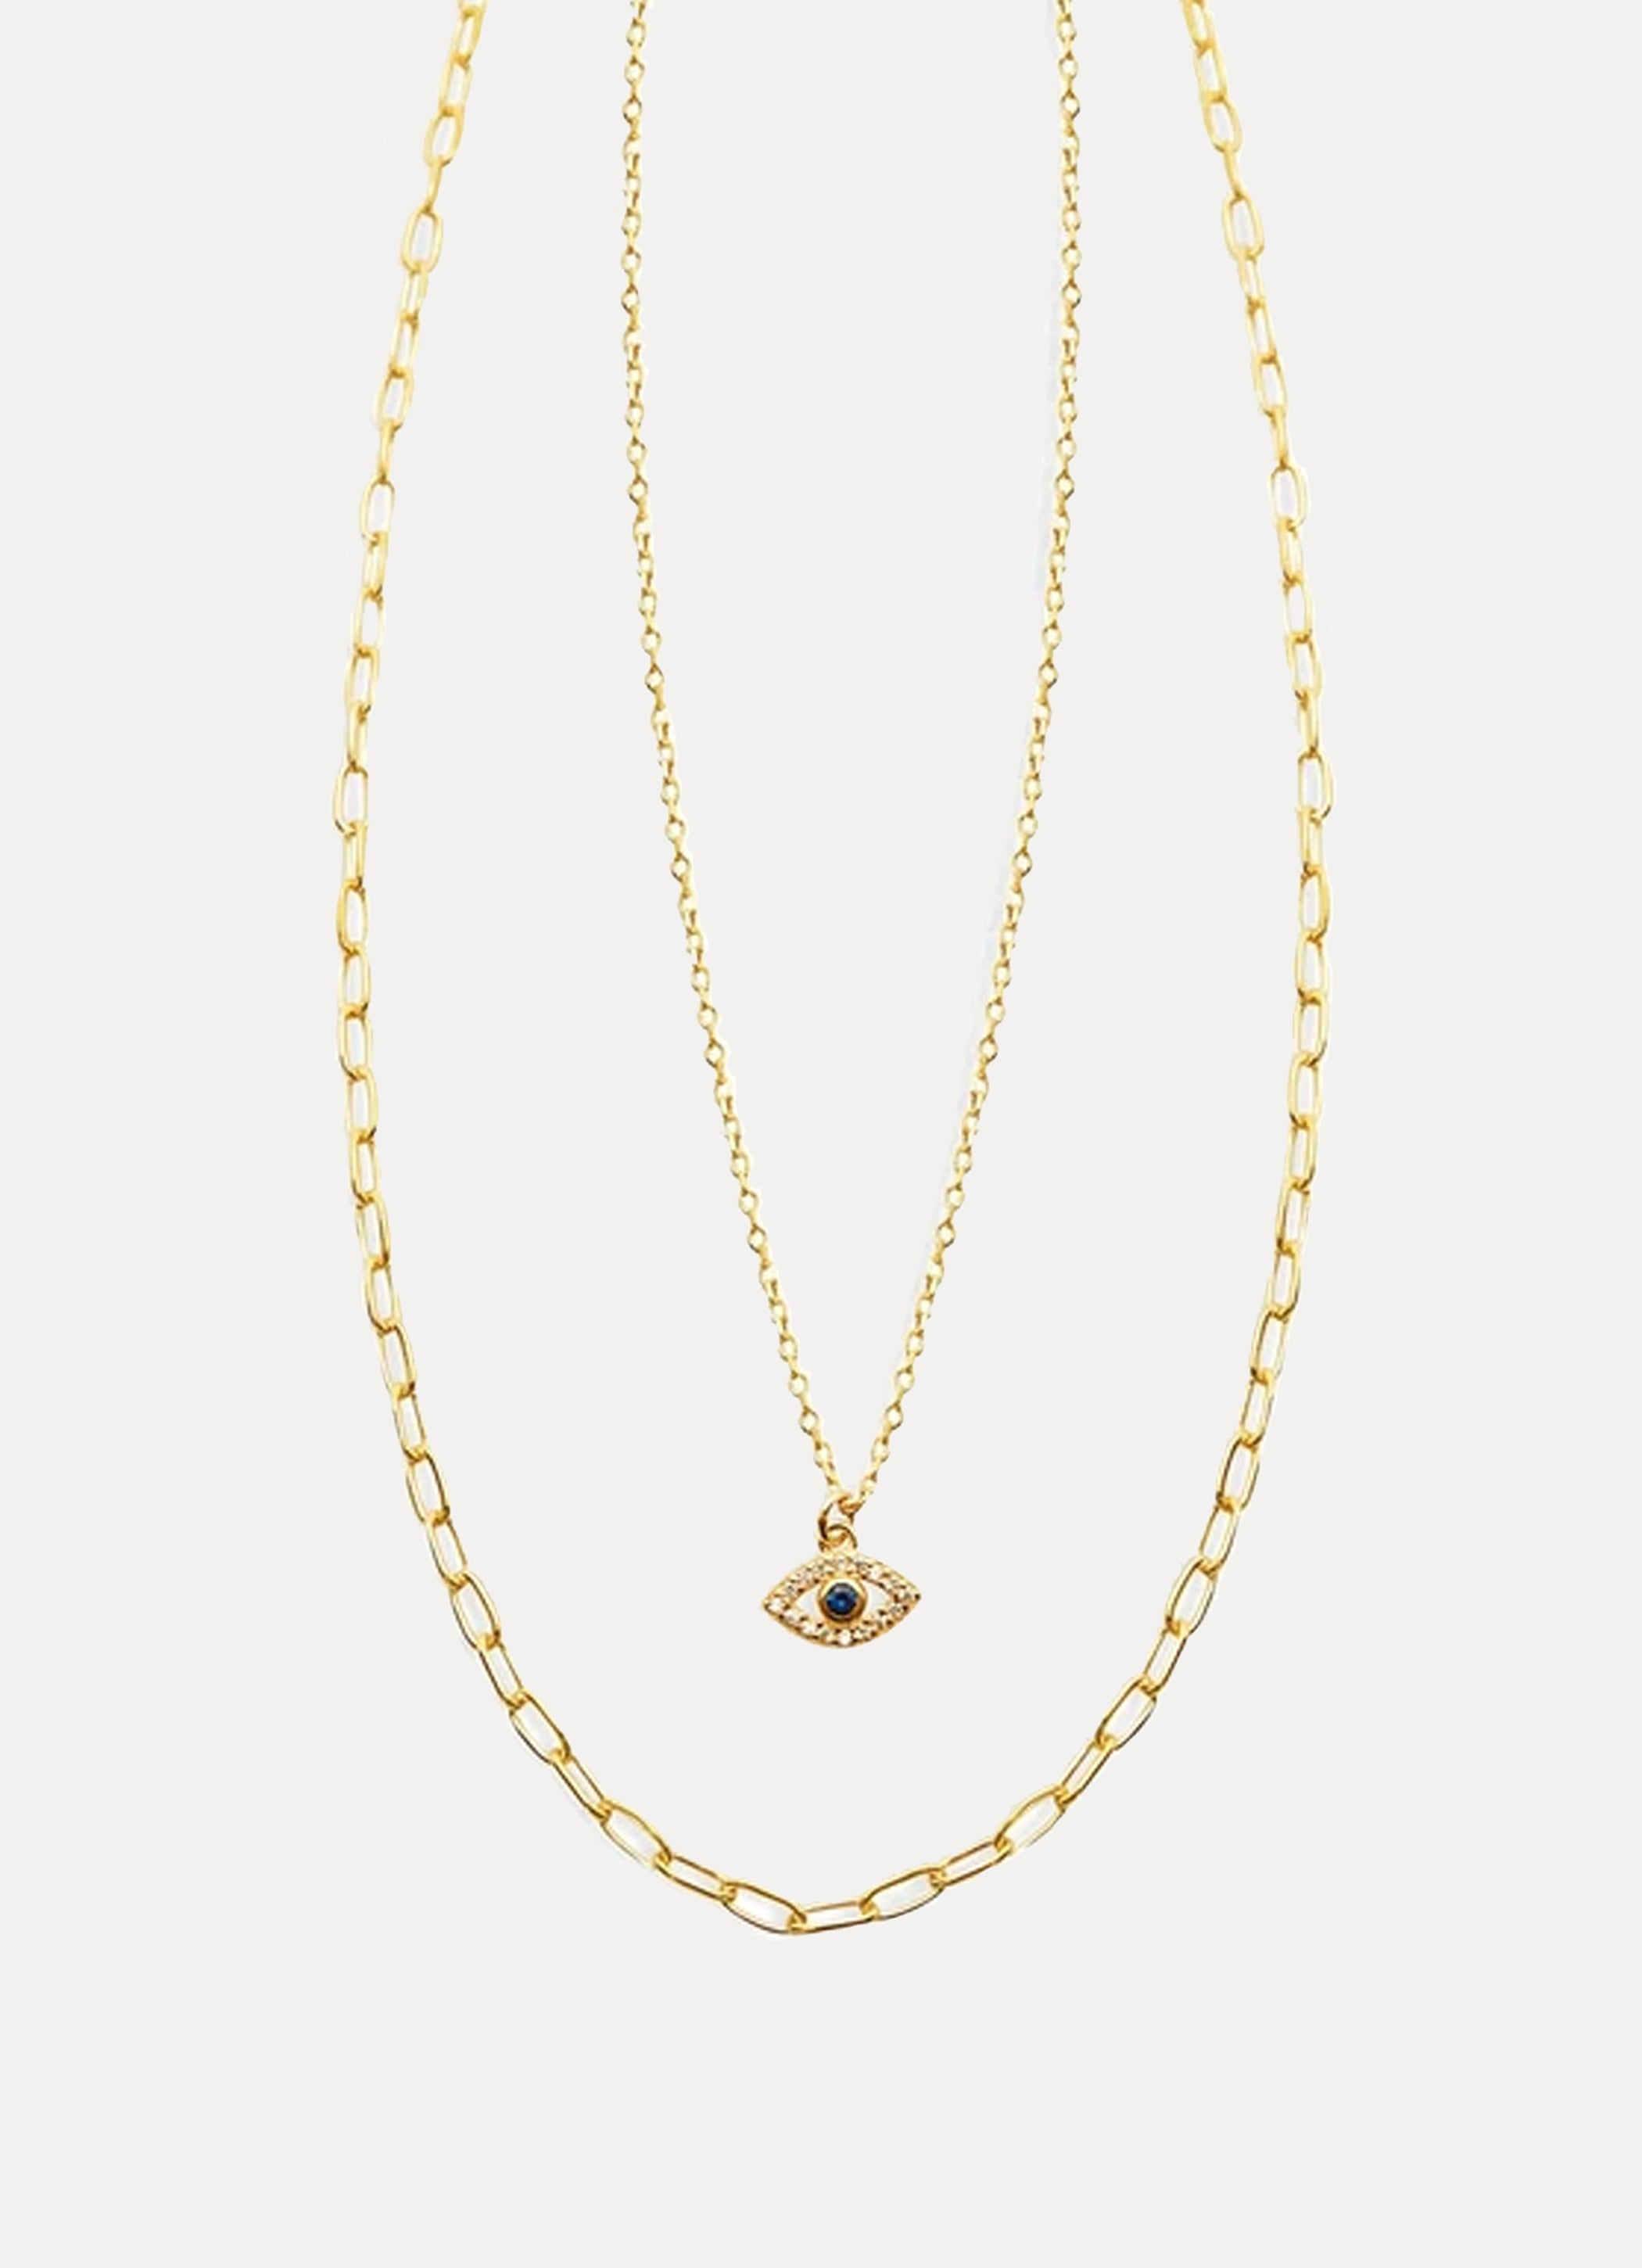 The Layered Evil Eye Necklace